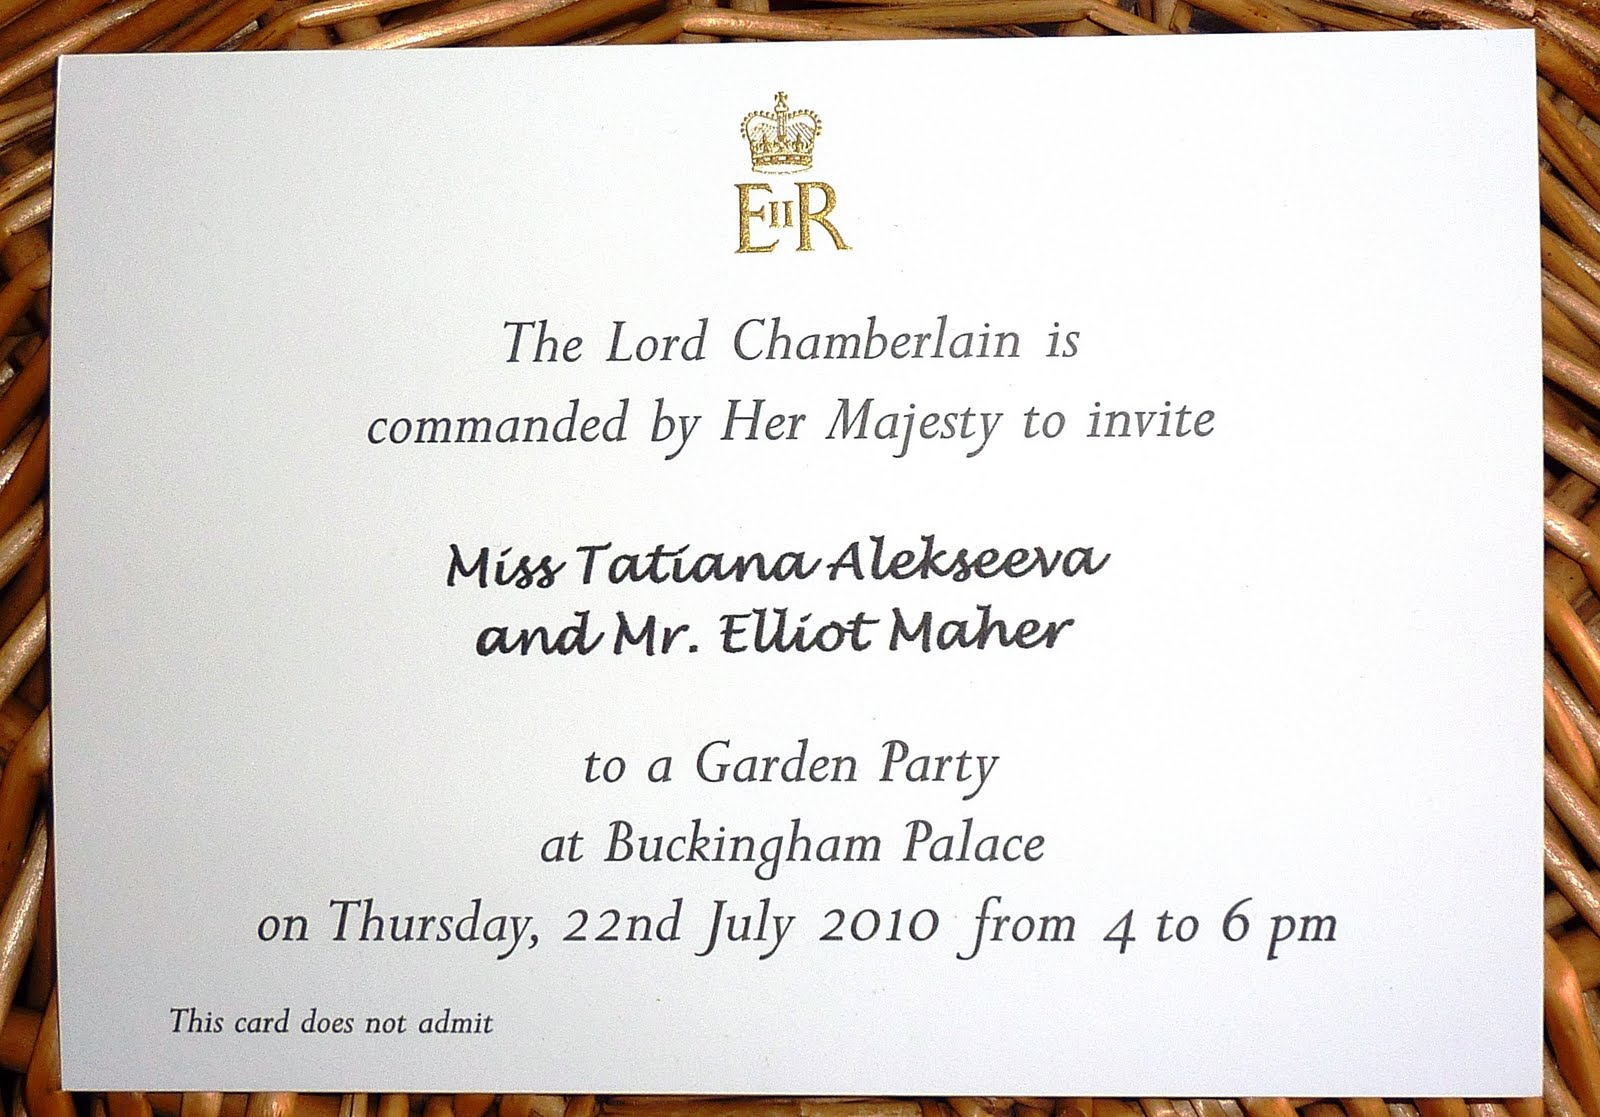 Royal peanut butter cups tanyas invitations are not transferable due to a limited number of invitations available the royal garden party may only be attended once now imagine my stopboris